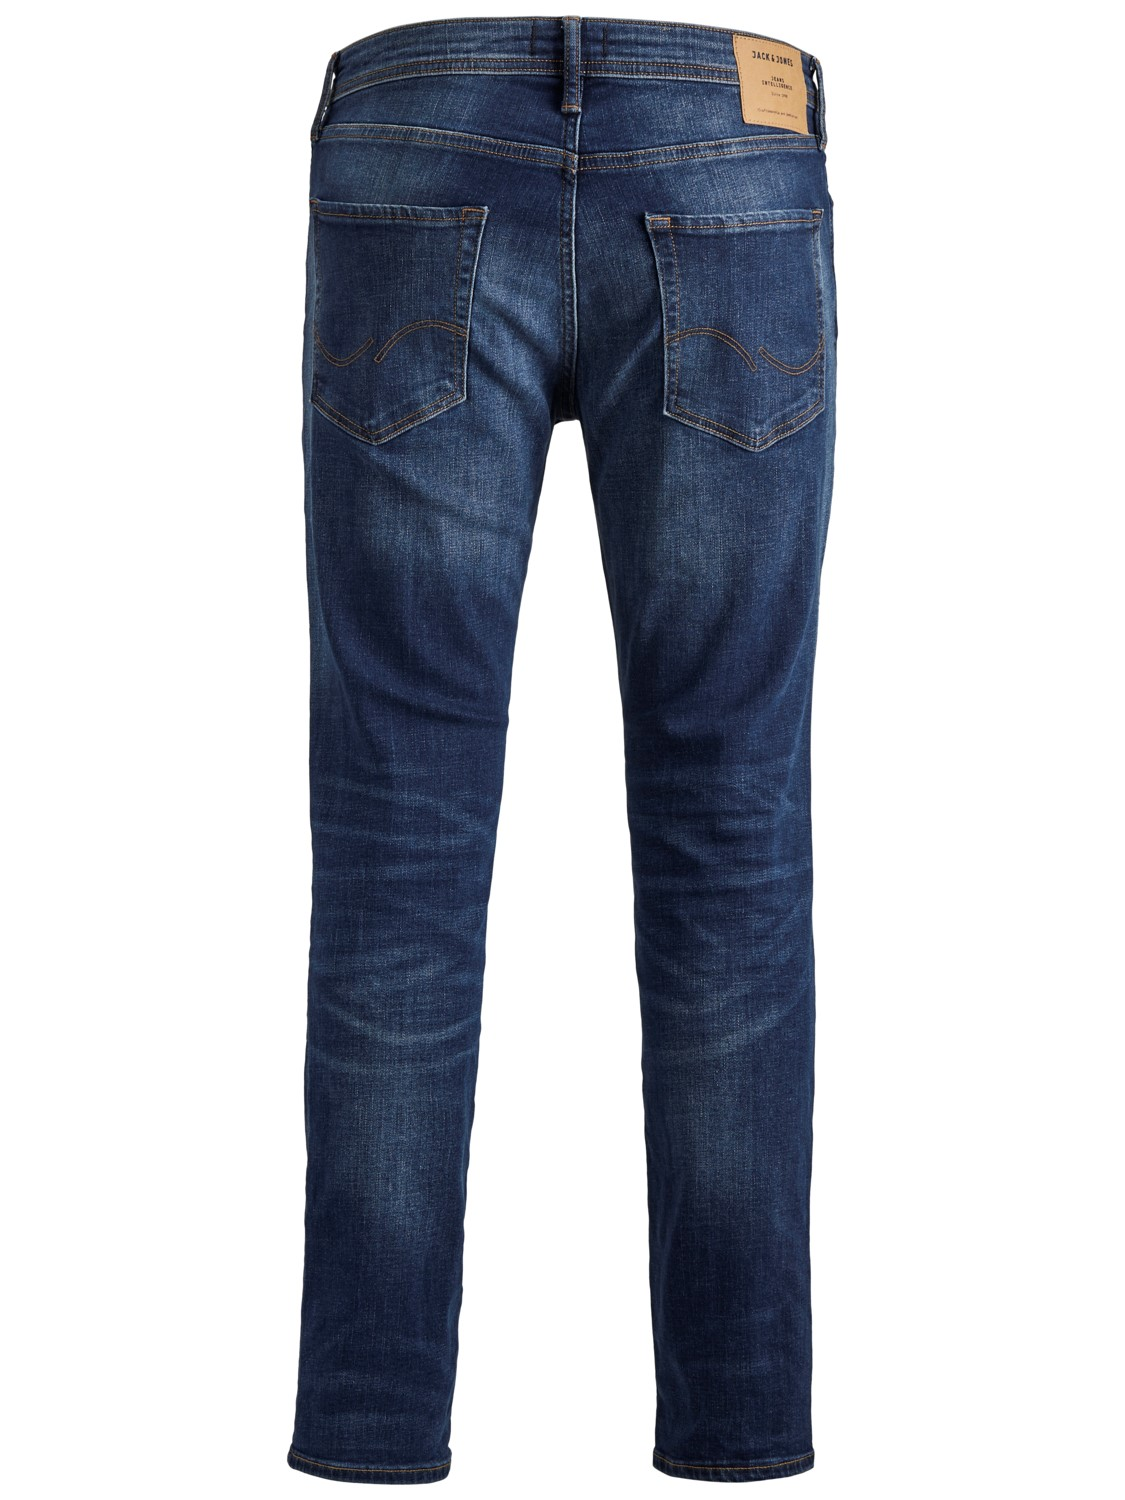 jack-jones-herren-jeans-jjitim-jjoriginal-am-782-50sps-slim-fit-blau-blue-denim